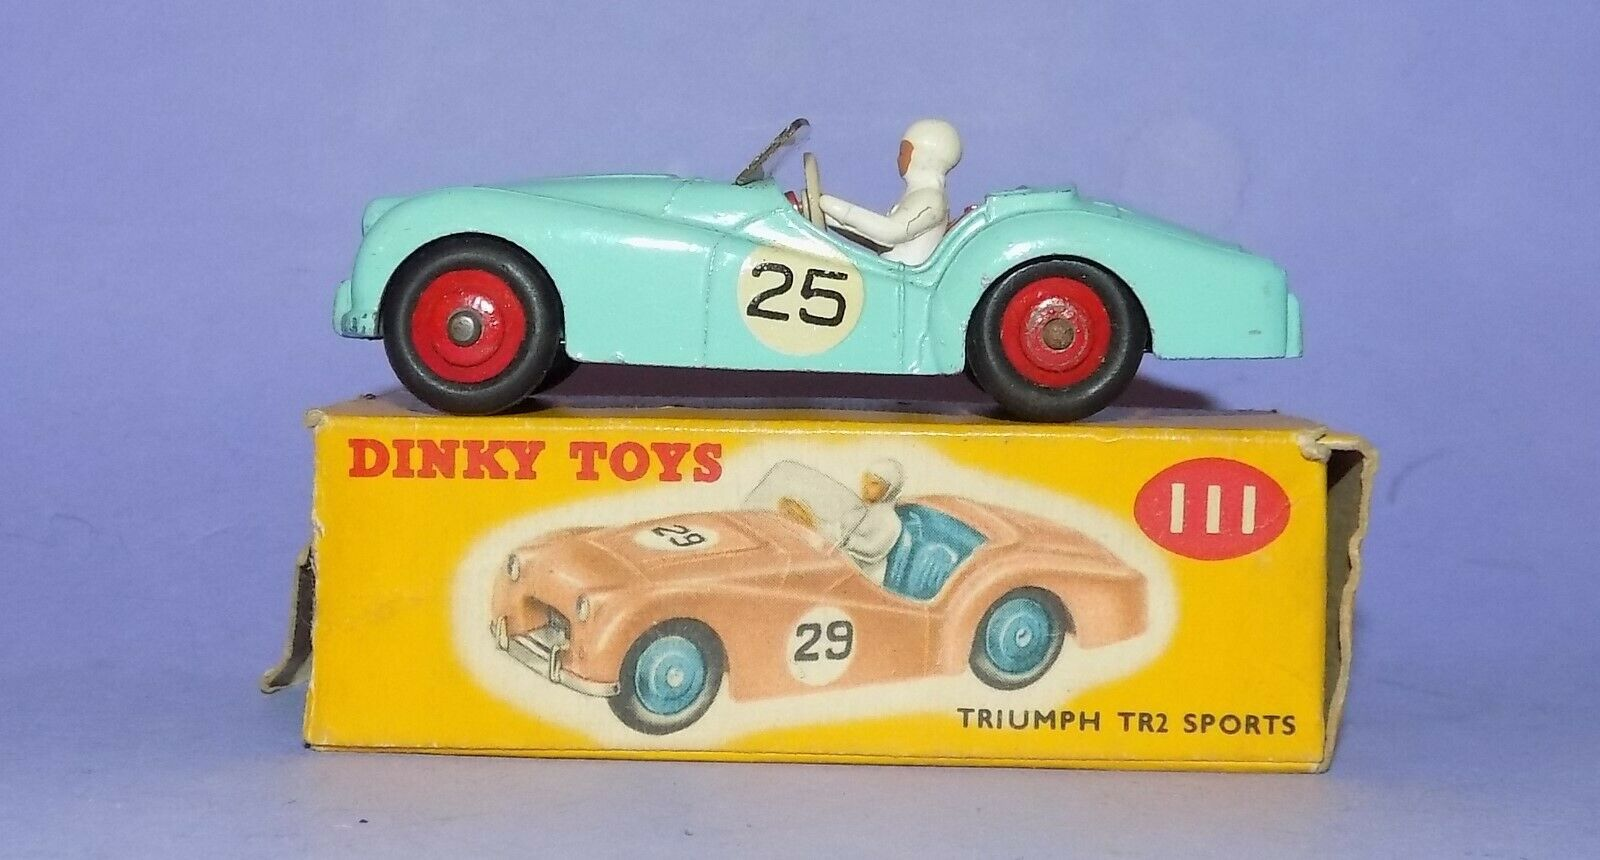 VINTAGE  1956-1959    DINKY TOYS  NO 111  TRIUMPH TR2 SPORTS CAR  493